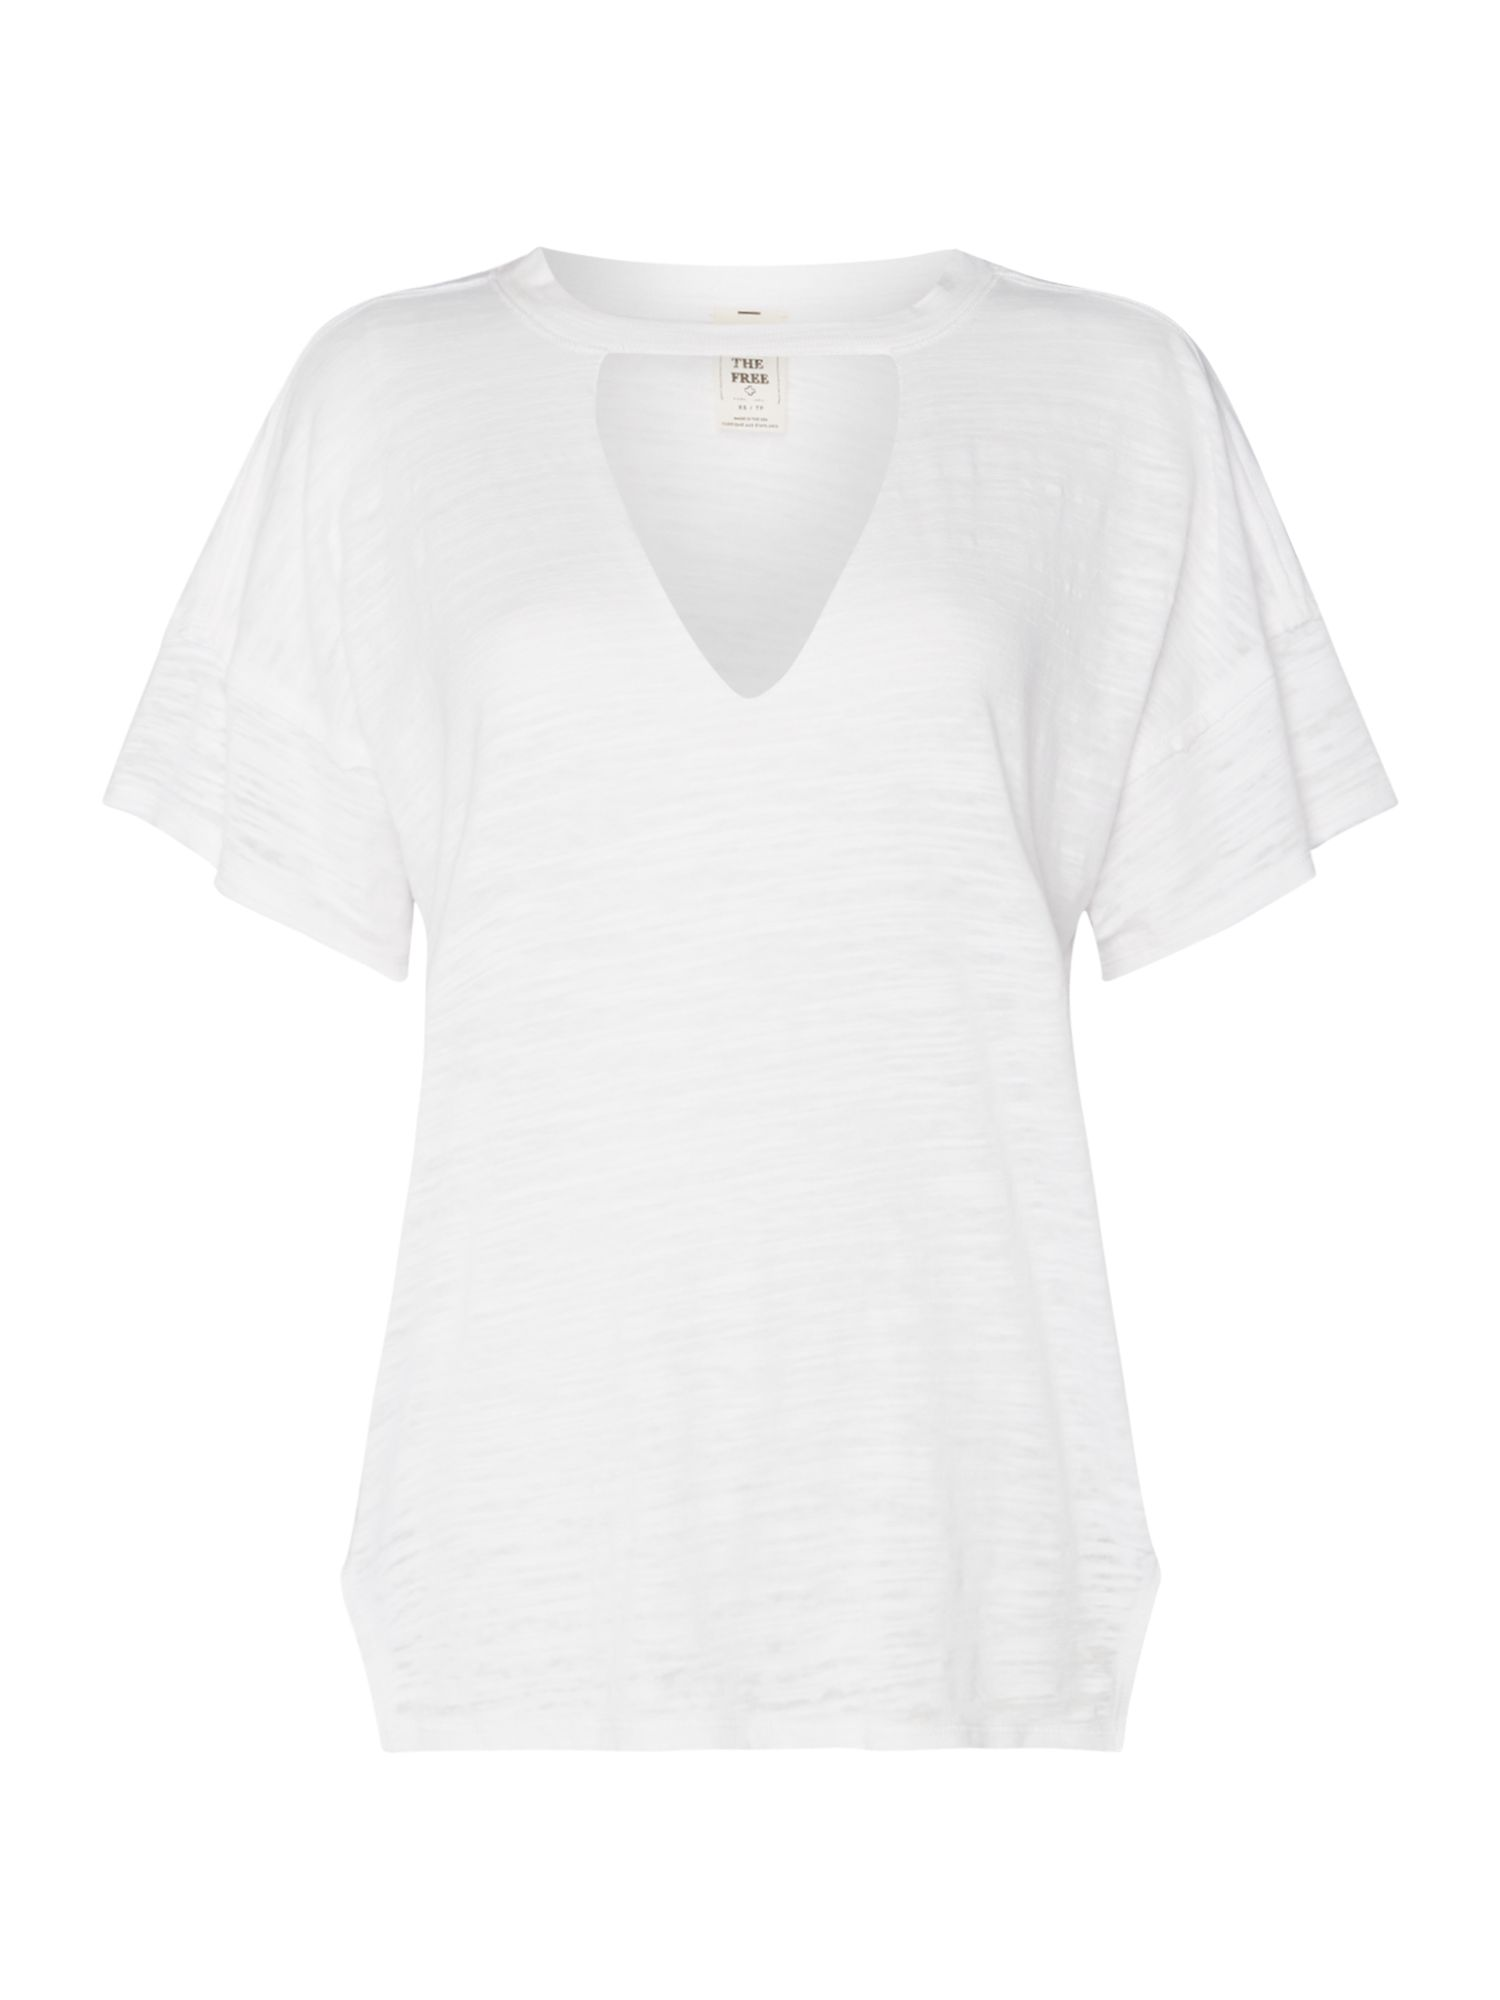 Free People Jordan Short Sleeve V-Neck T-Shirt, White